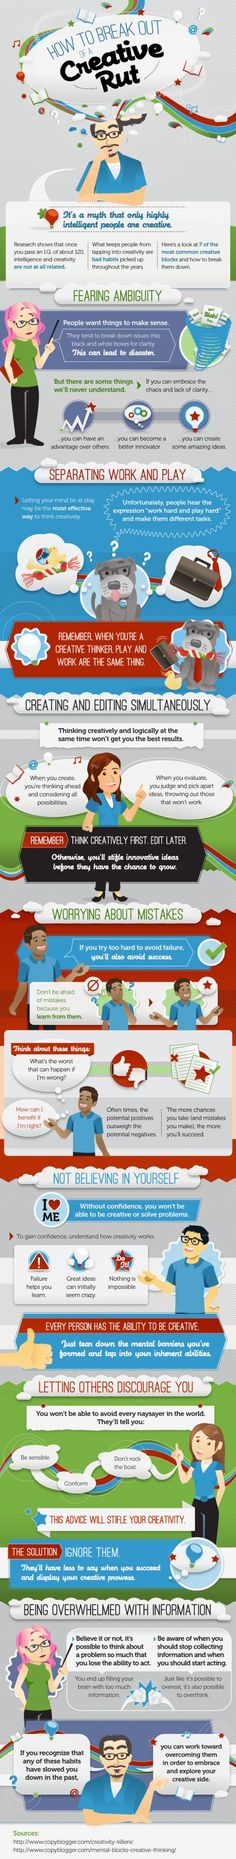 7 Quick Tips To Be More Creative - #Infographic - Epreneur TV - Pinned by #borntobesocial, France